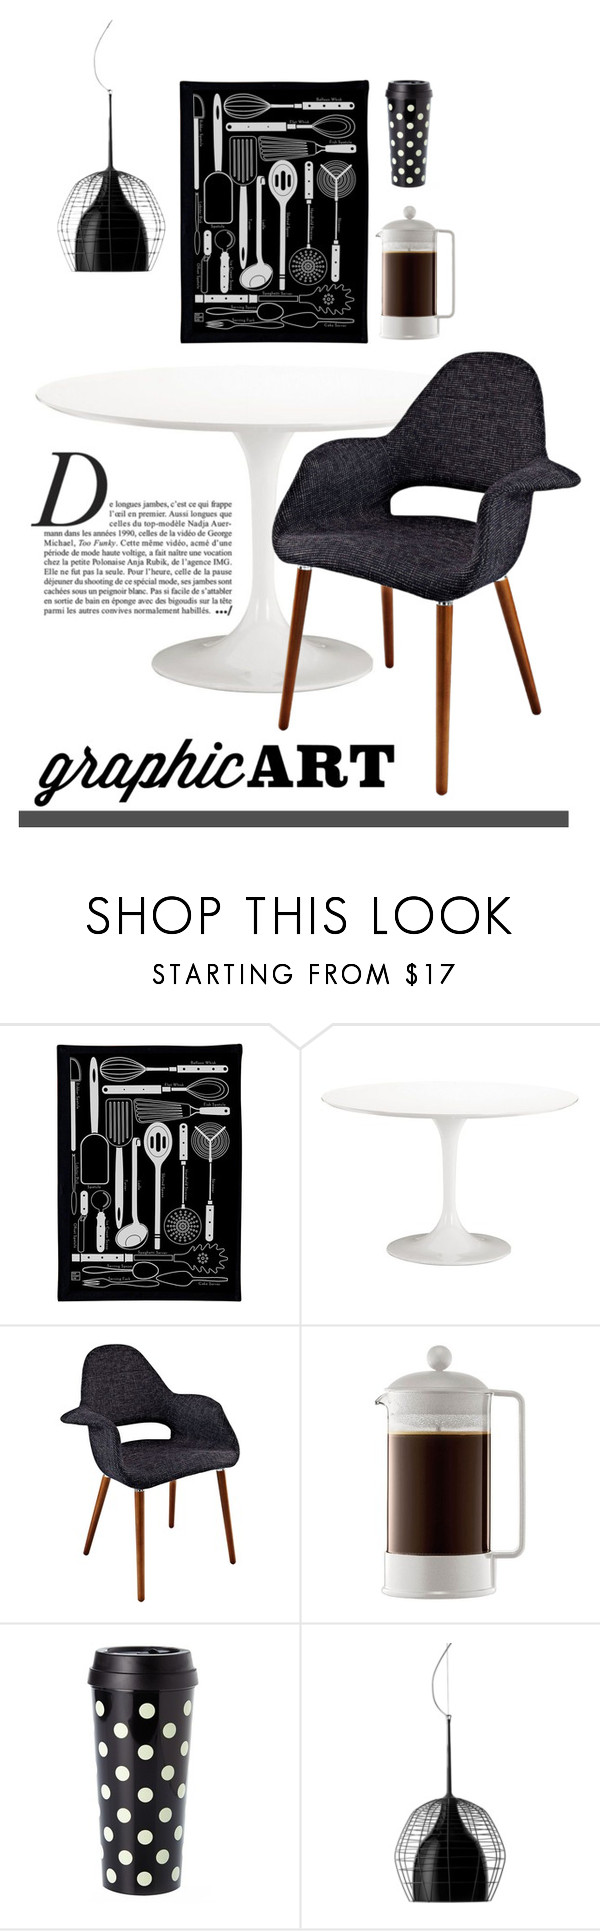 """""""Starkly Bold and Simple"""" by patricia-dimmick ❤ liked on Polyvore featuring interior, interiors, interior design, home, home decor, interior decorating, Pop Chart Lab, Zuo, Universal Lighting and Decor and Bodum"""